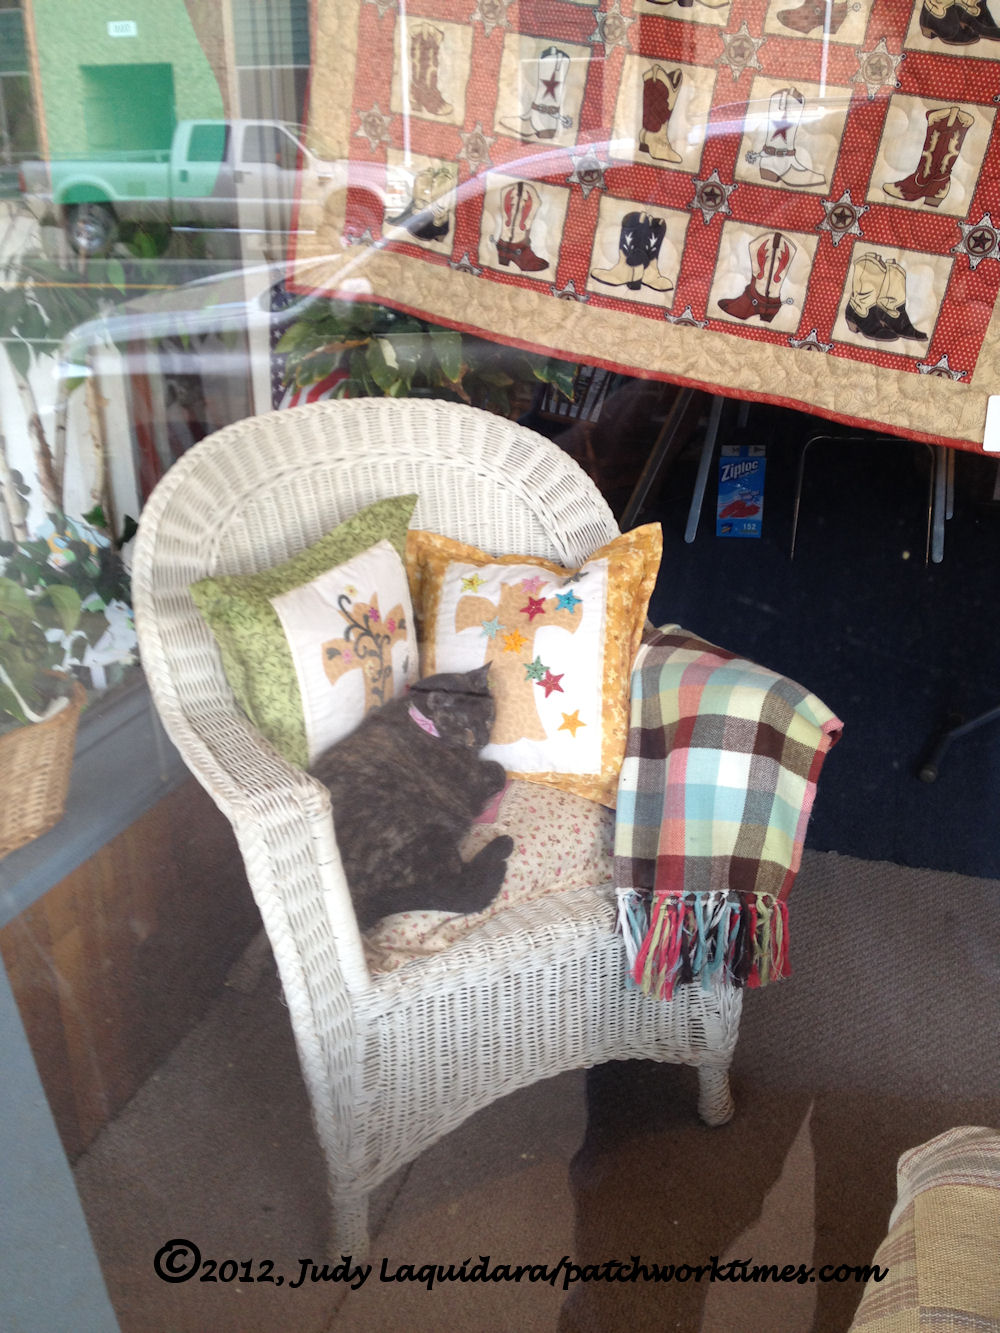 How Much Is The Kitty In The Window?